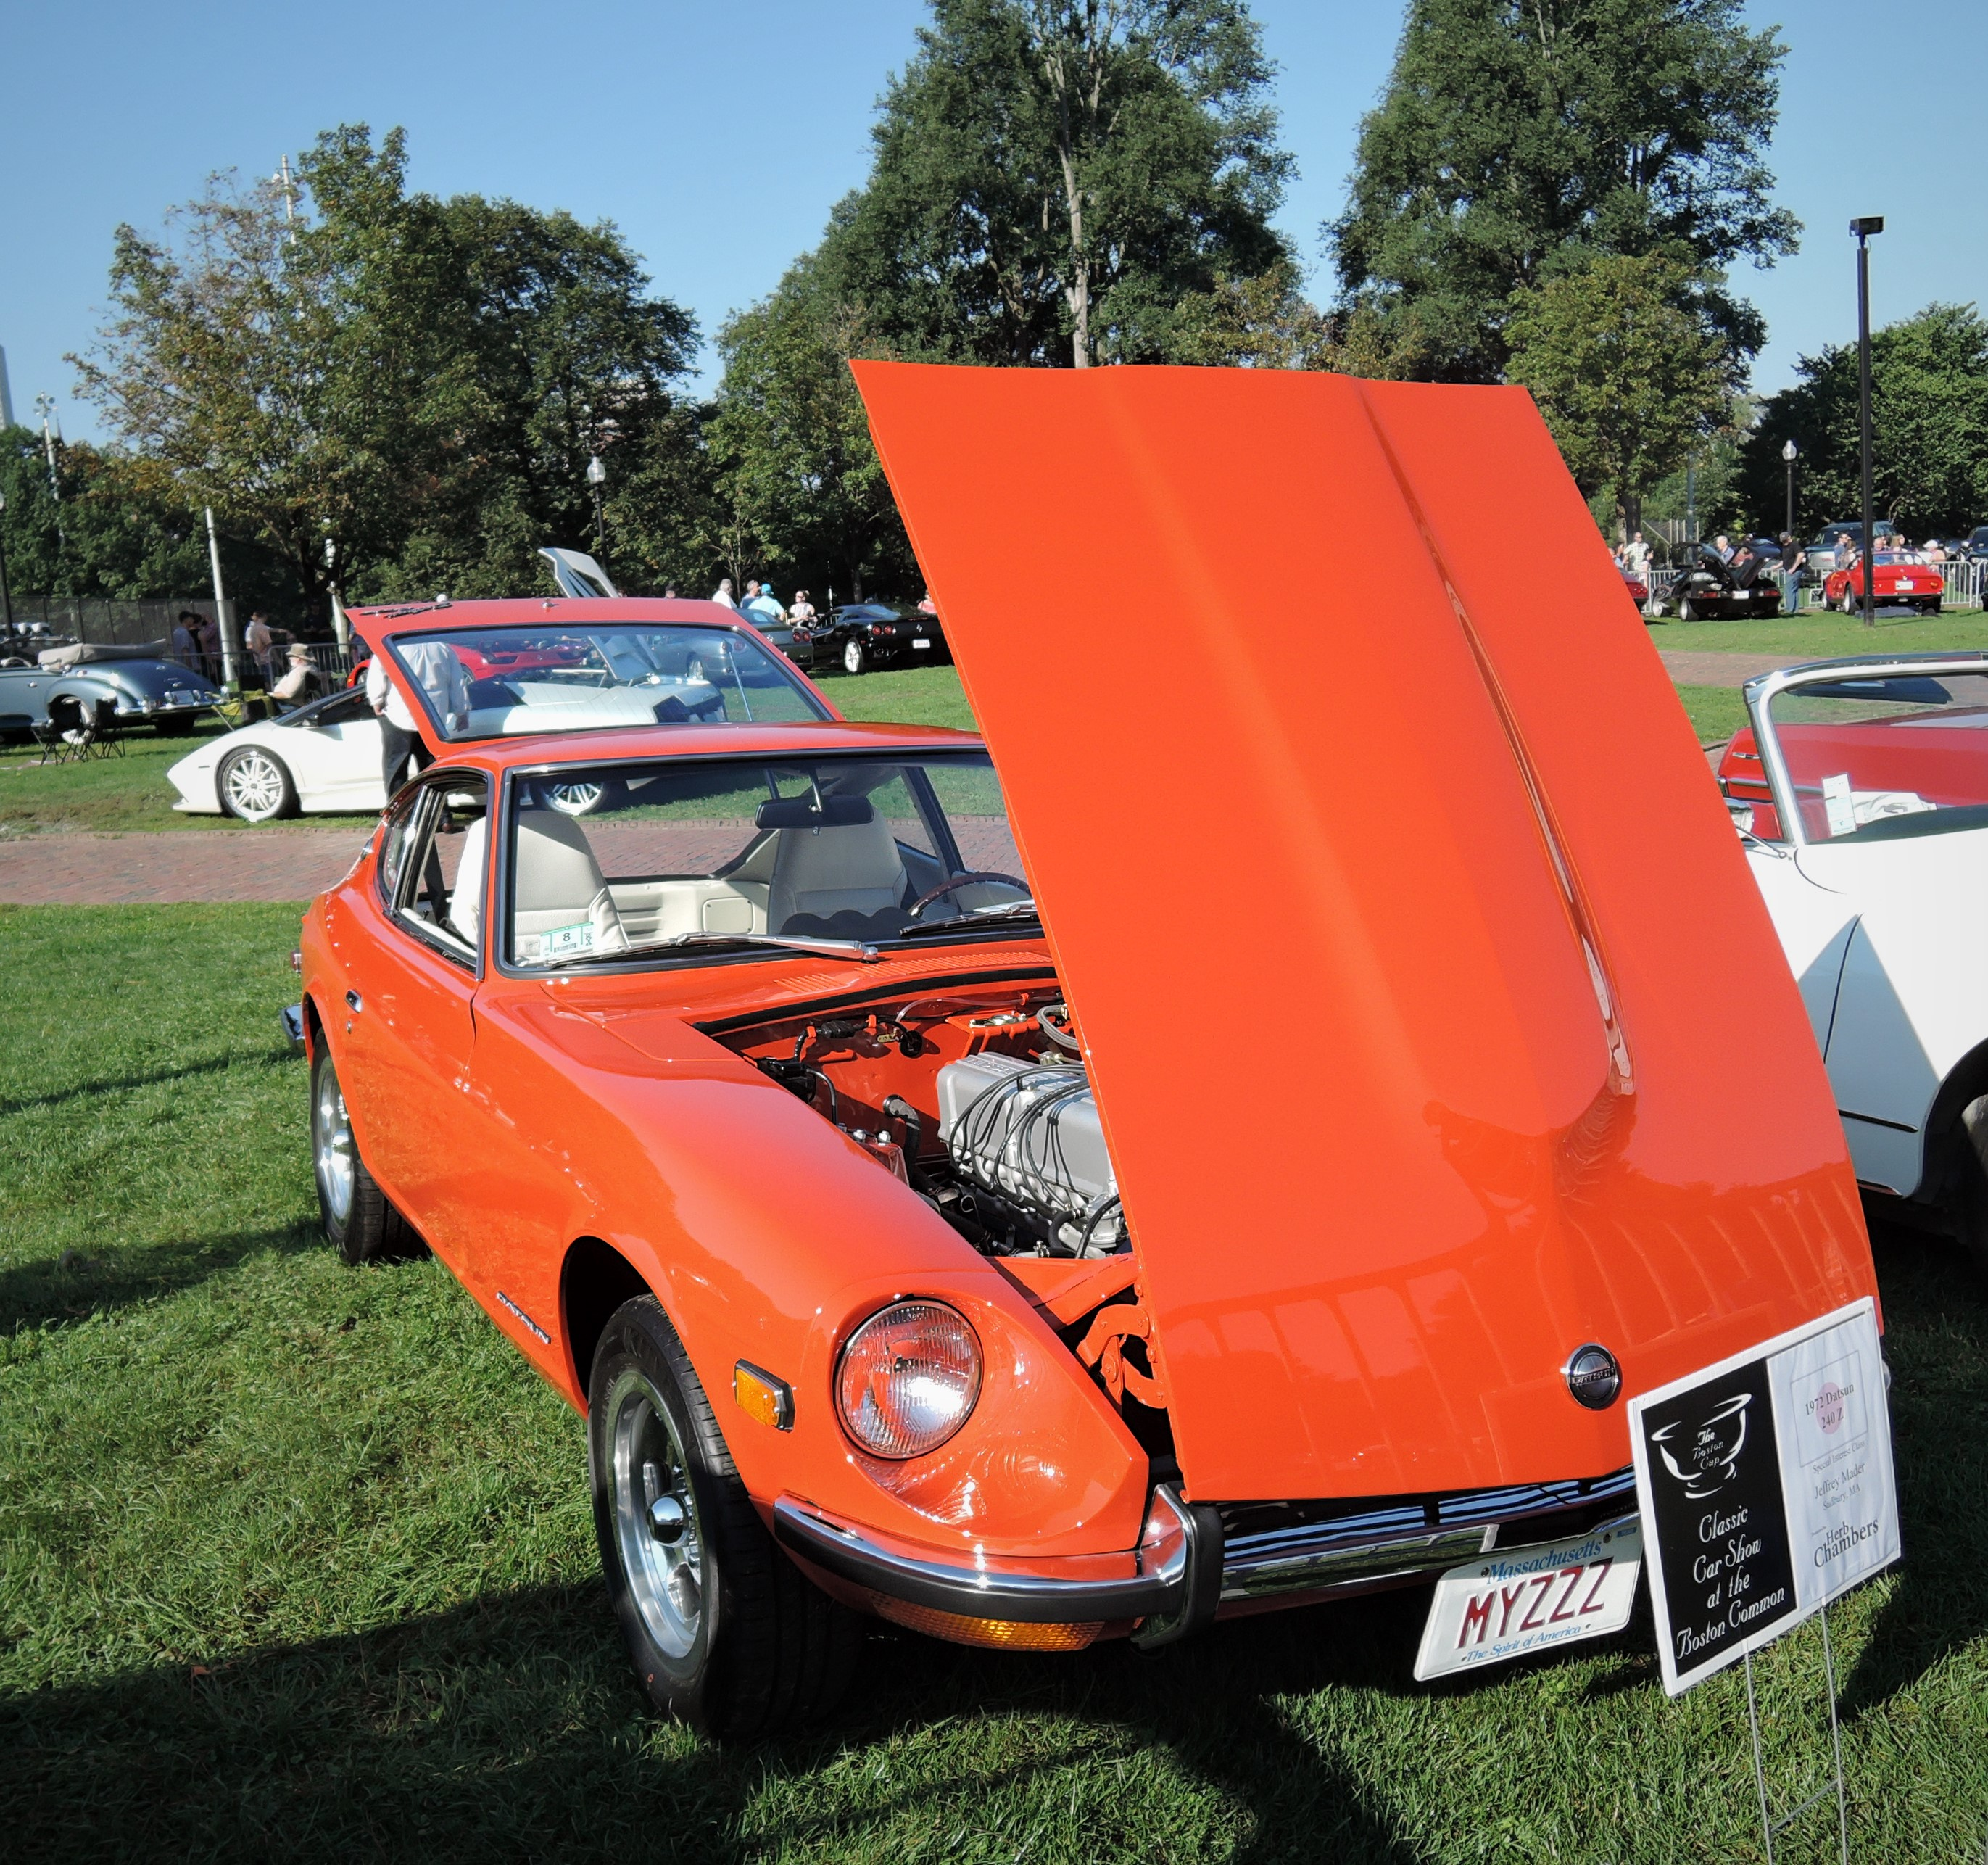 orange 1972 Datsun 240Z - The Boston Cup 2017